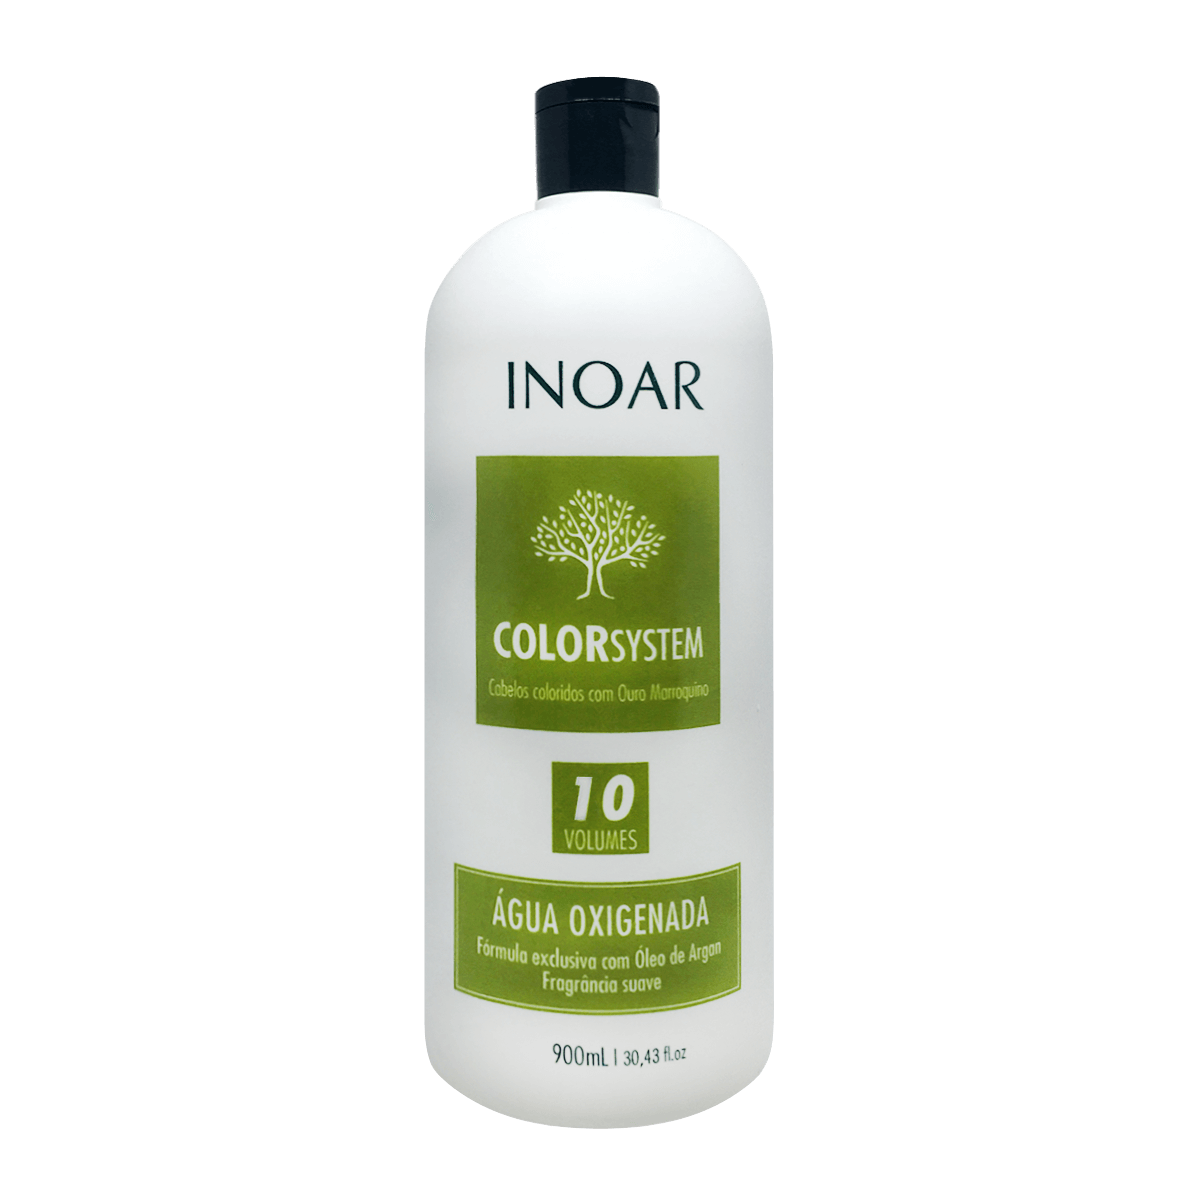 Inoar Color System Agua Oxigenada 10Vol 900ml